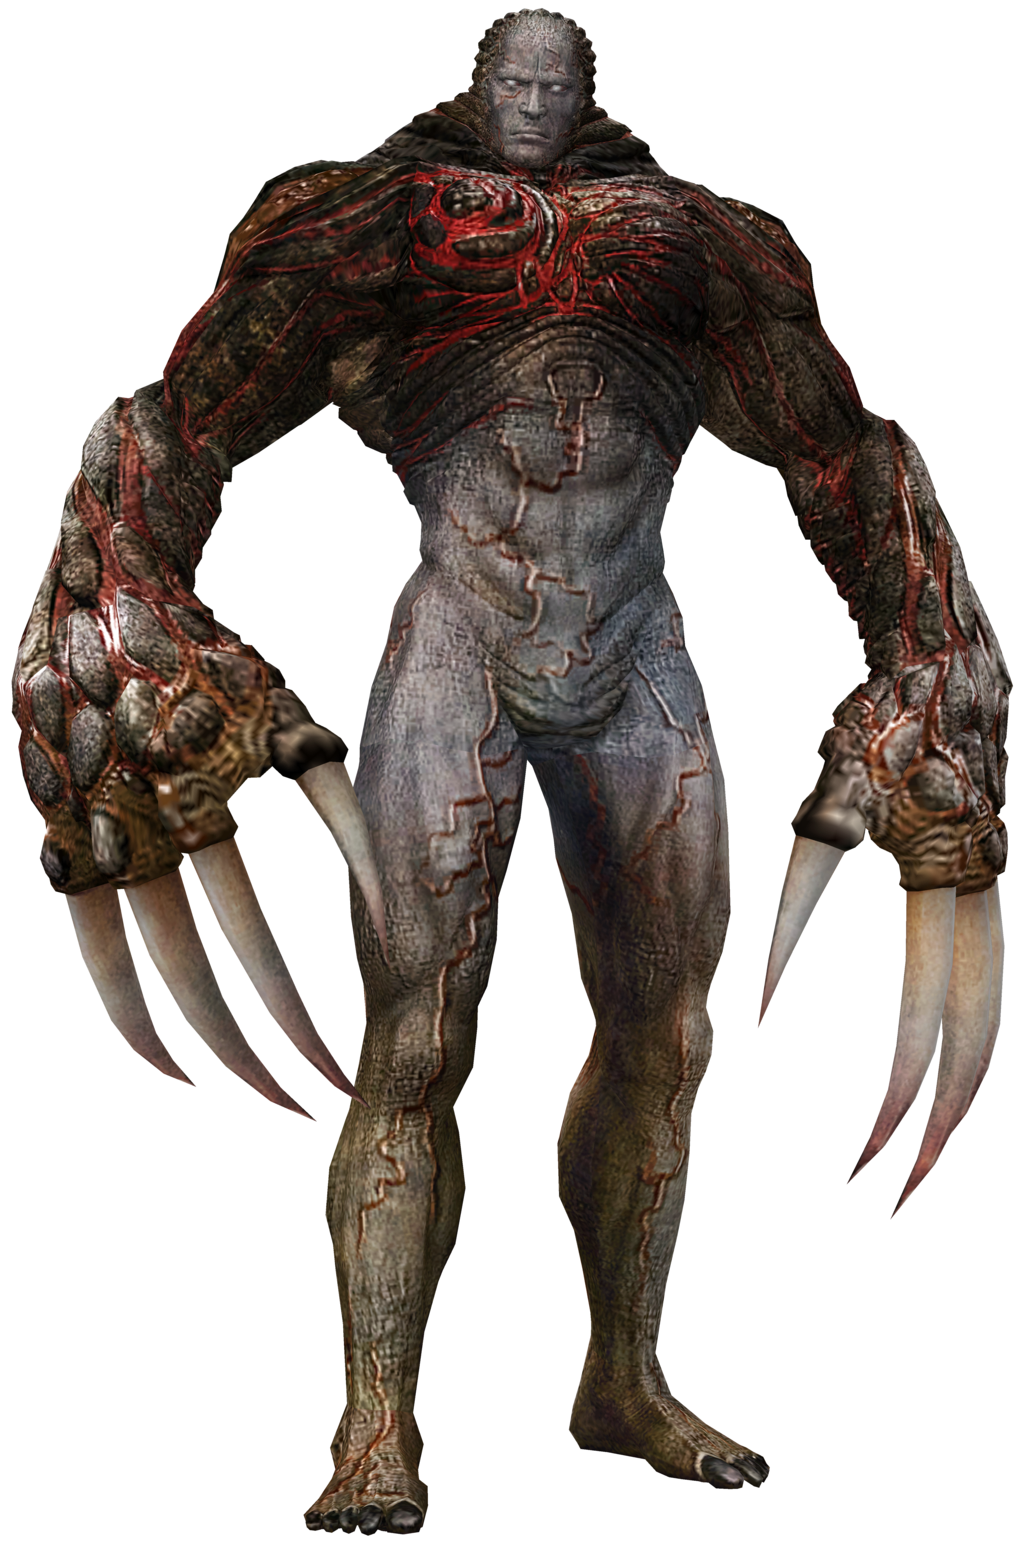 Resident evil tyrant png. Image t mutated fictional